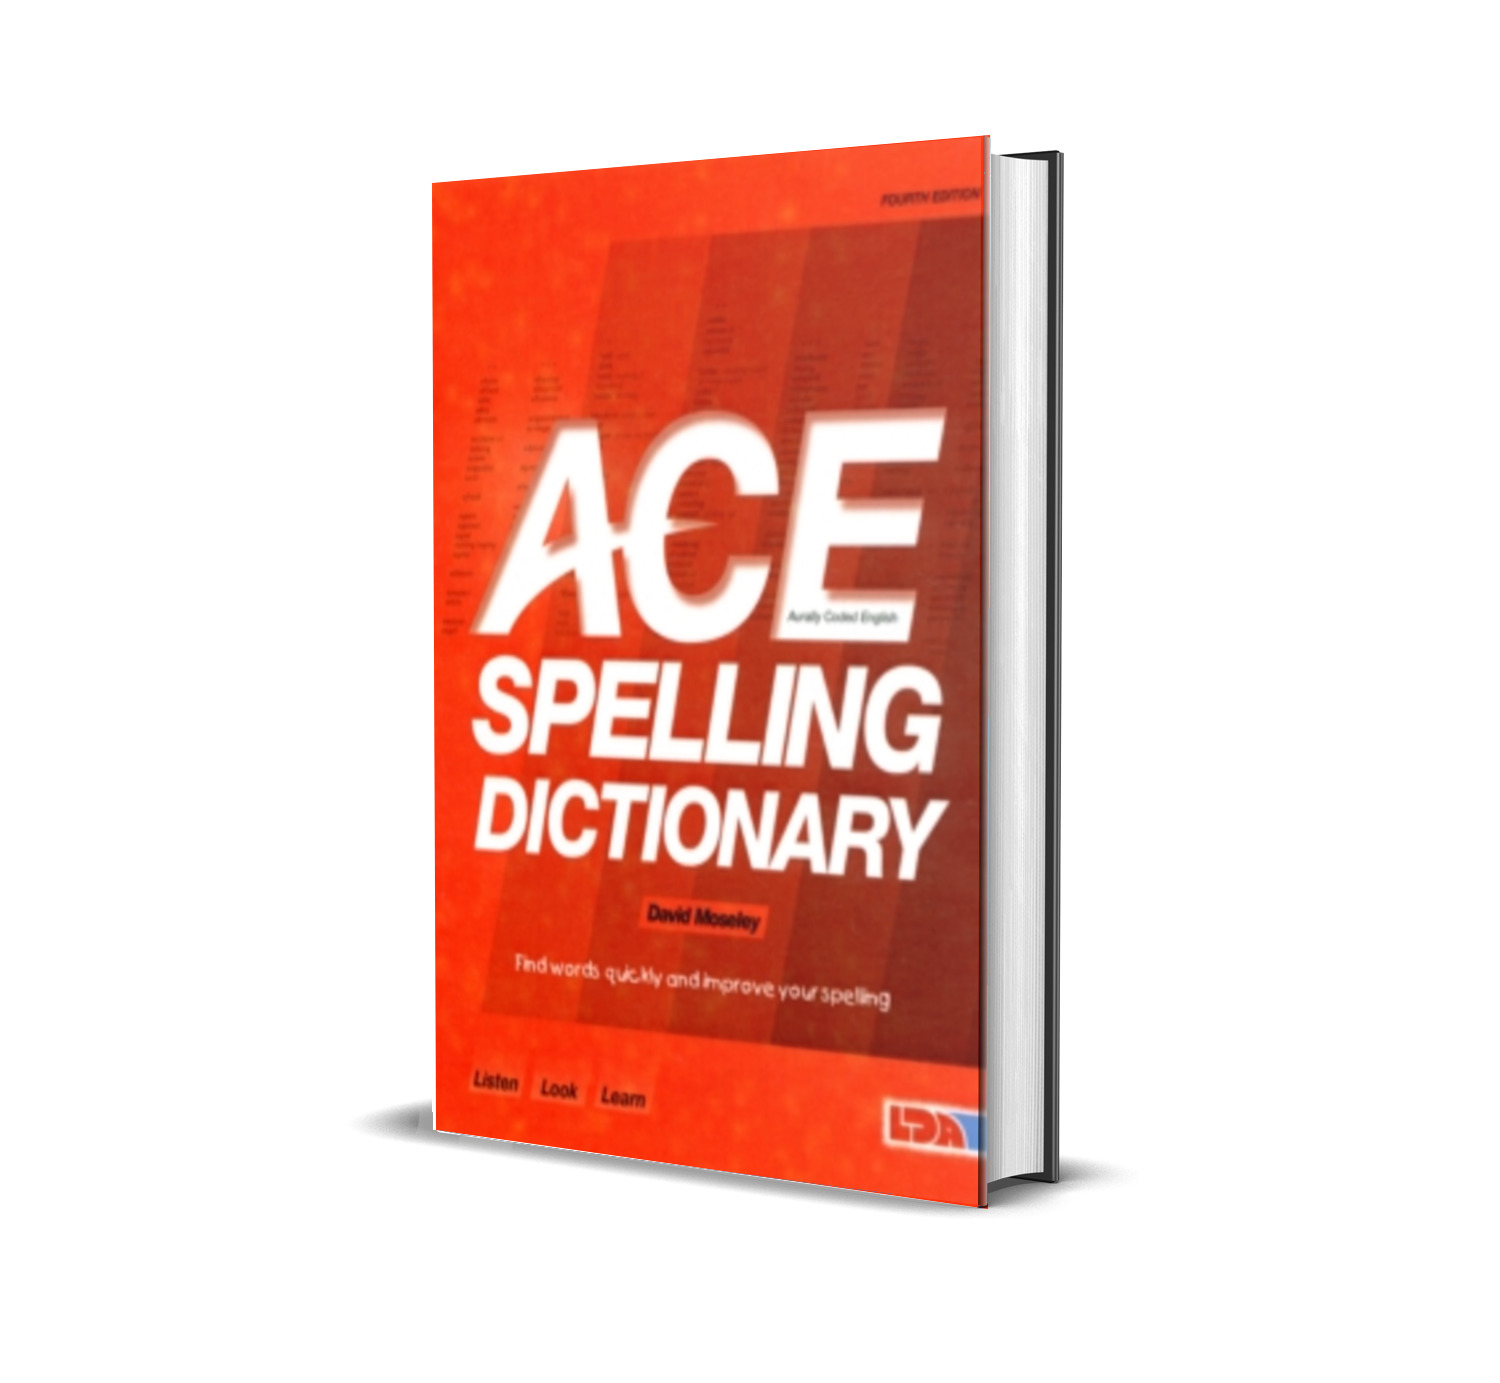 ace spelling dictionary outside the box learning resources. Black Bedroom Furniture Sets. Home Design Ideas